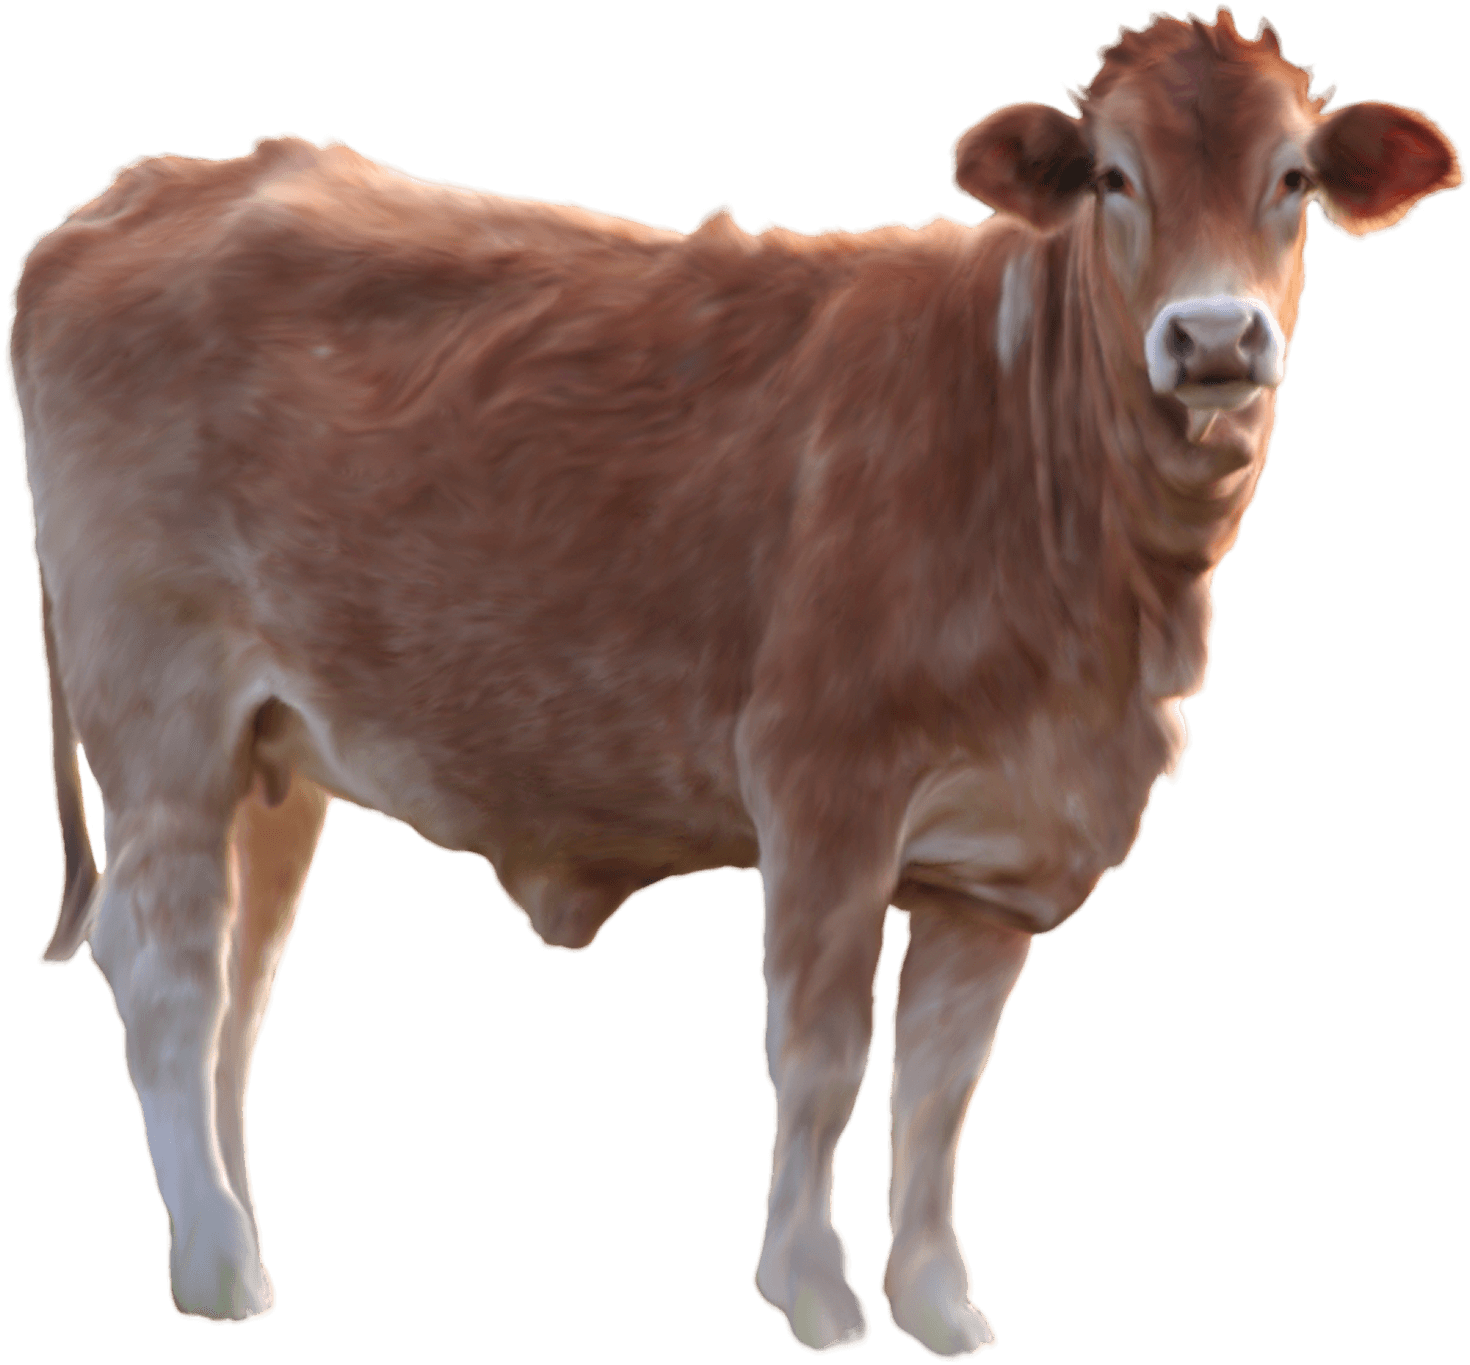 Cow Png - Cow Png Image PNG Image